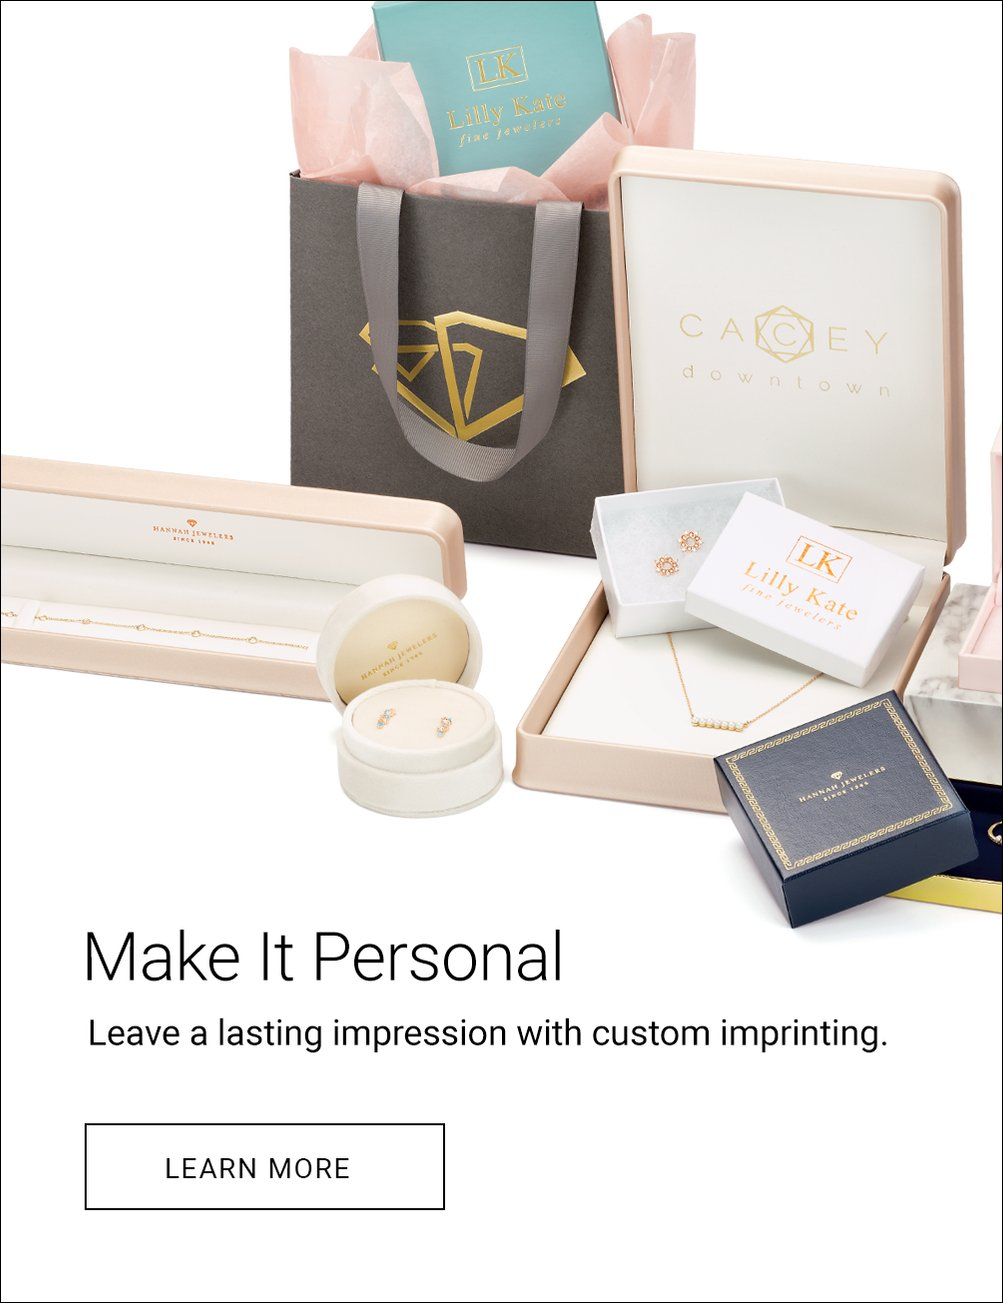 Make it personal with custom imprinting